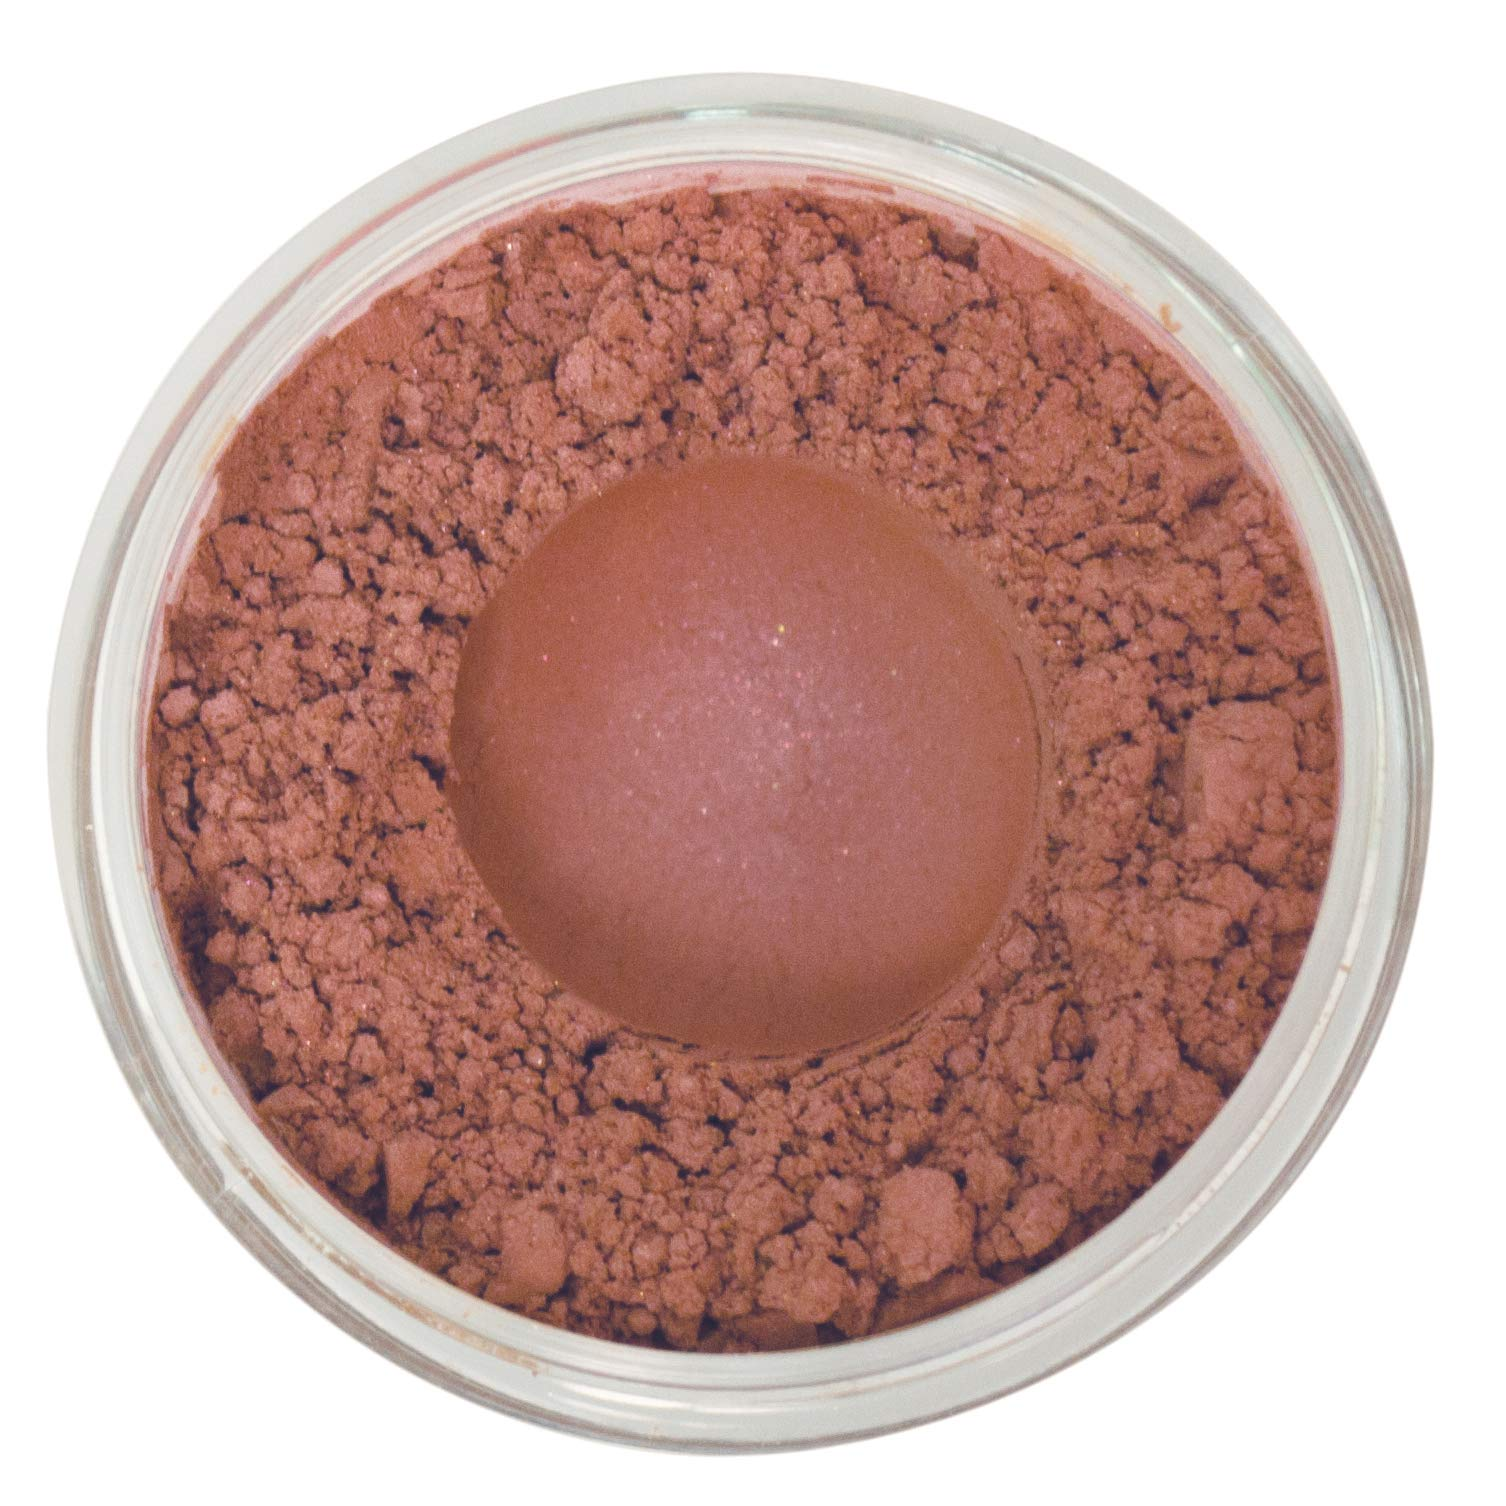 Mineral Blush Highlighter - Makeup Loose Powder â Blendable, Long Lasting & Buildable Coverage - Natural Makeup (9 grams, Sunset Plum)